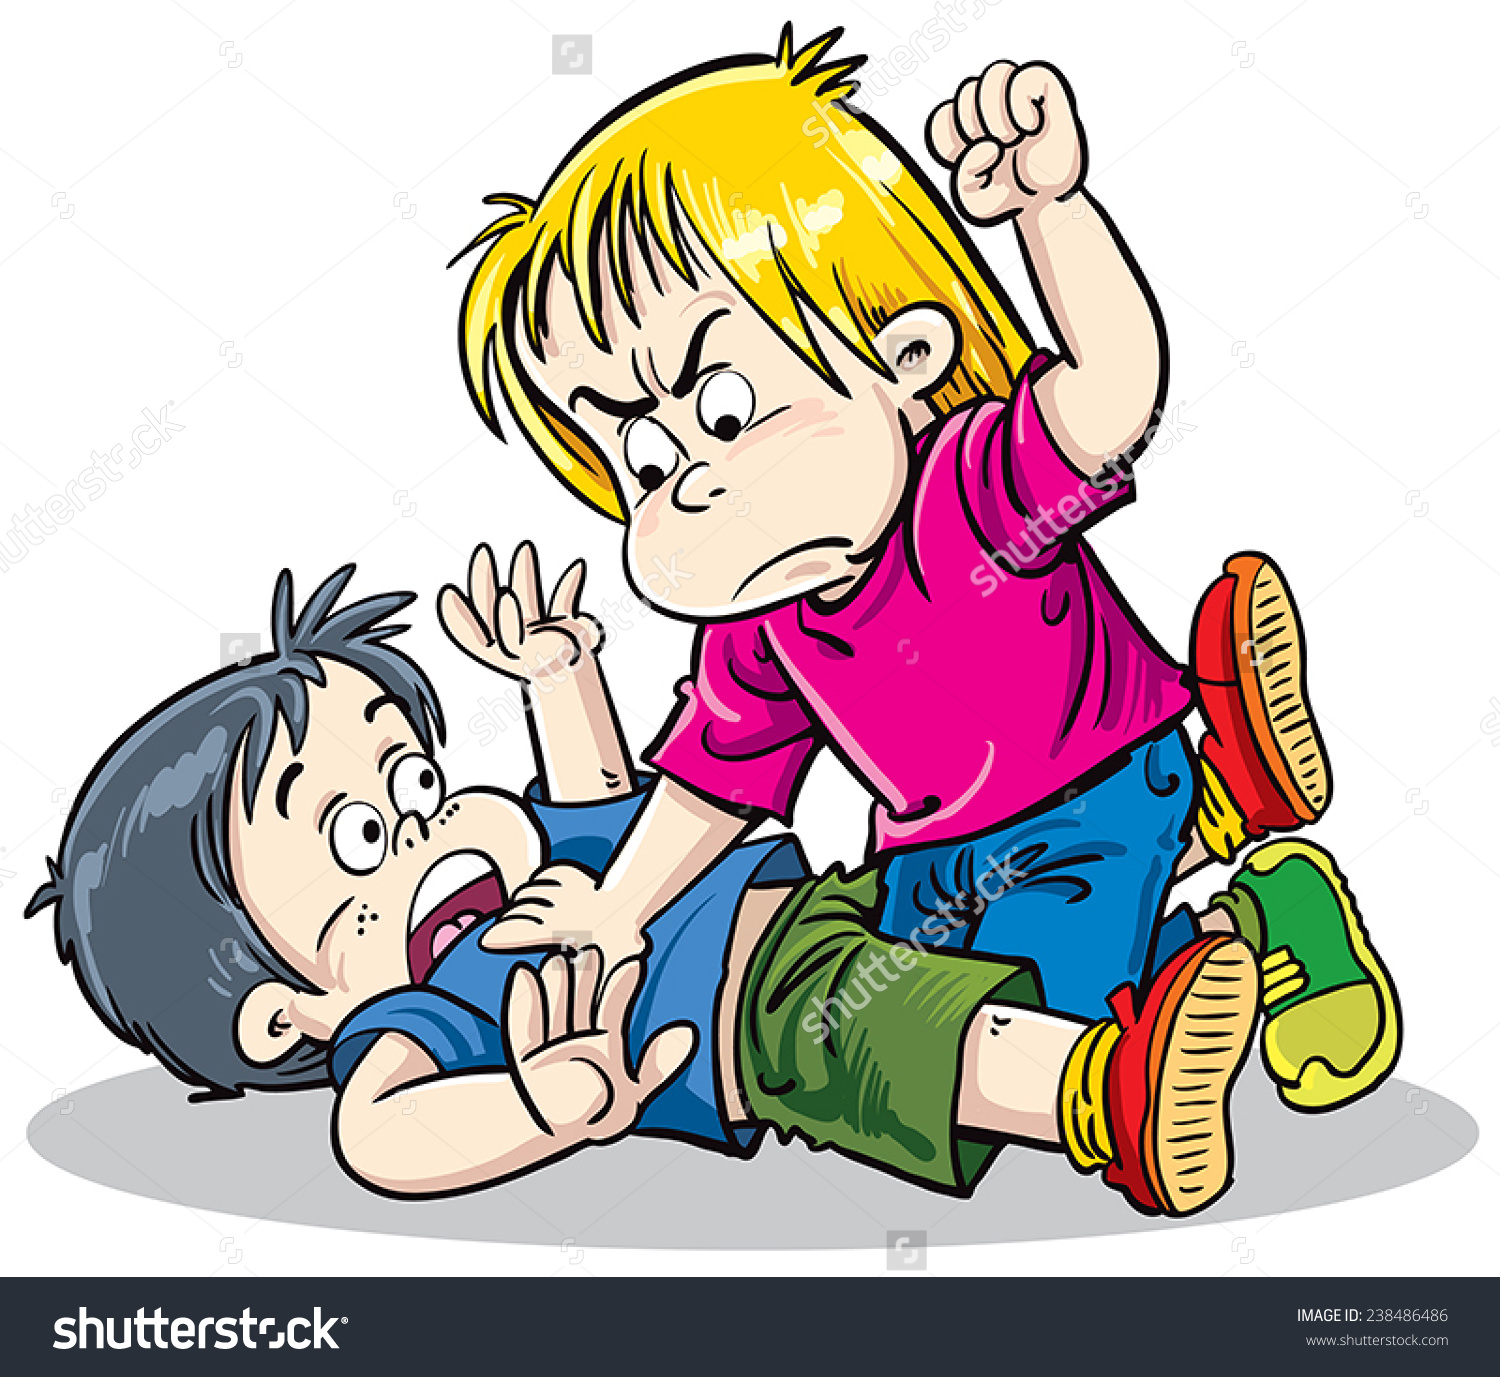 Kids Fight Clipart.